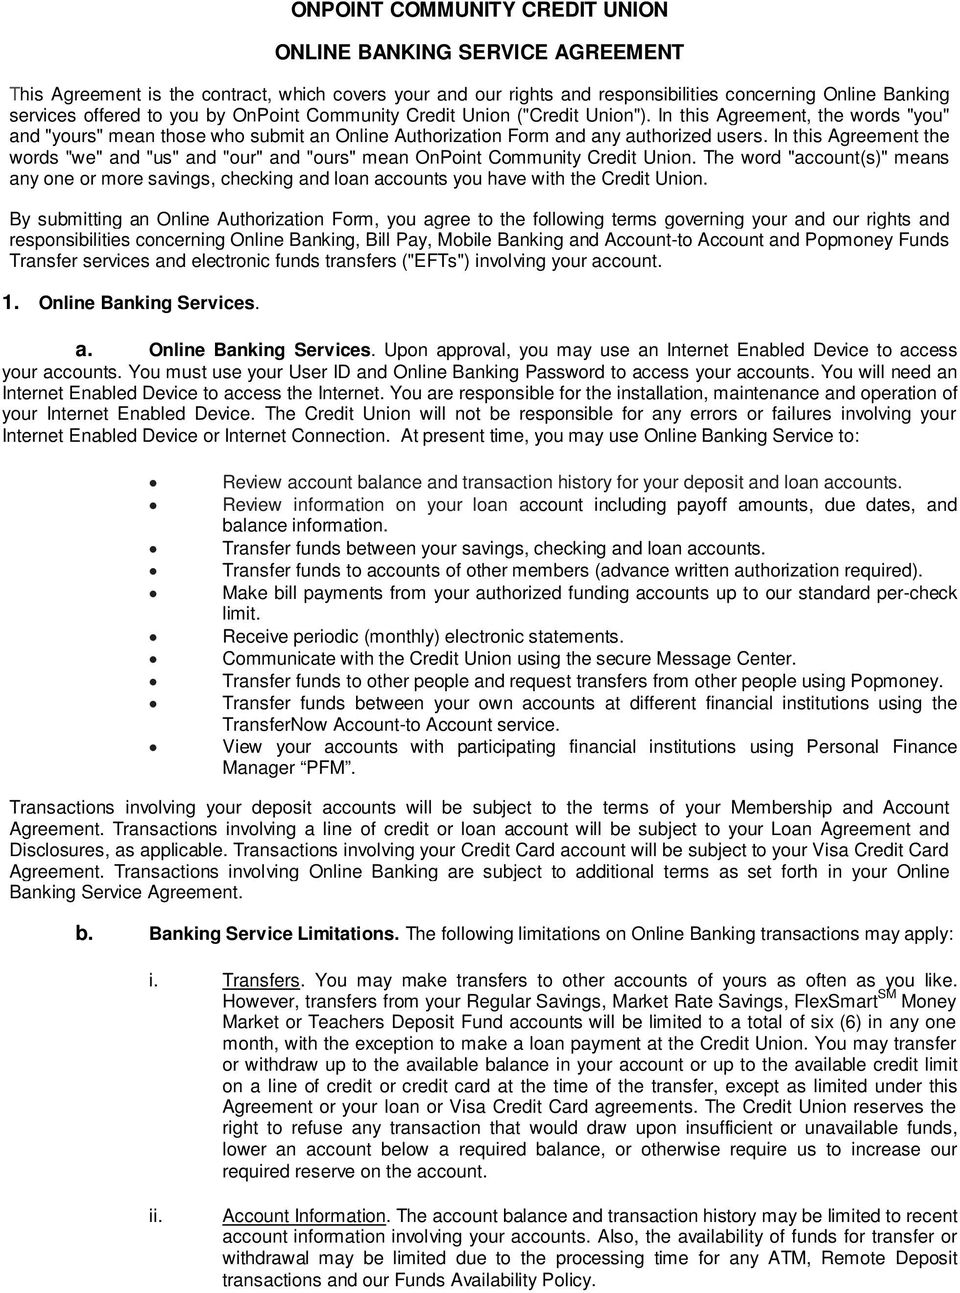 onpoint community credit union online banking service agreement - pdf